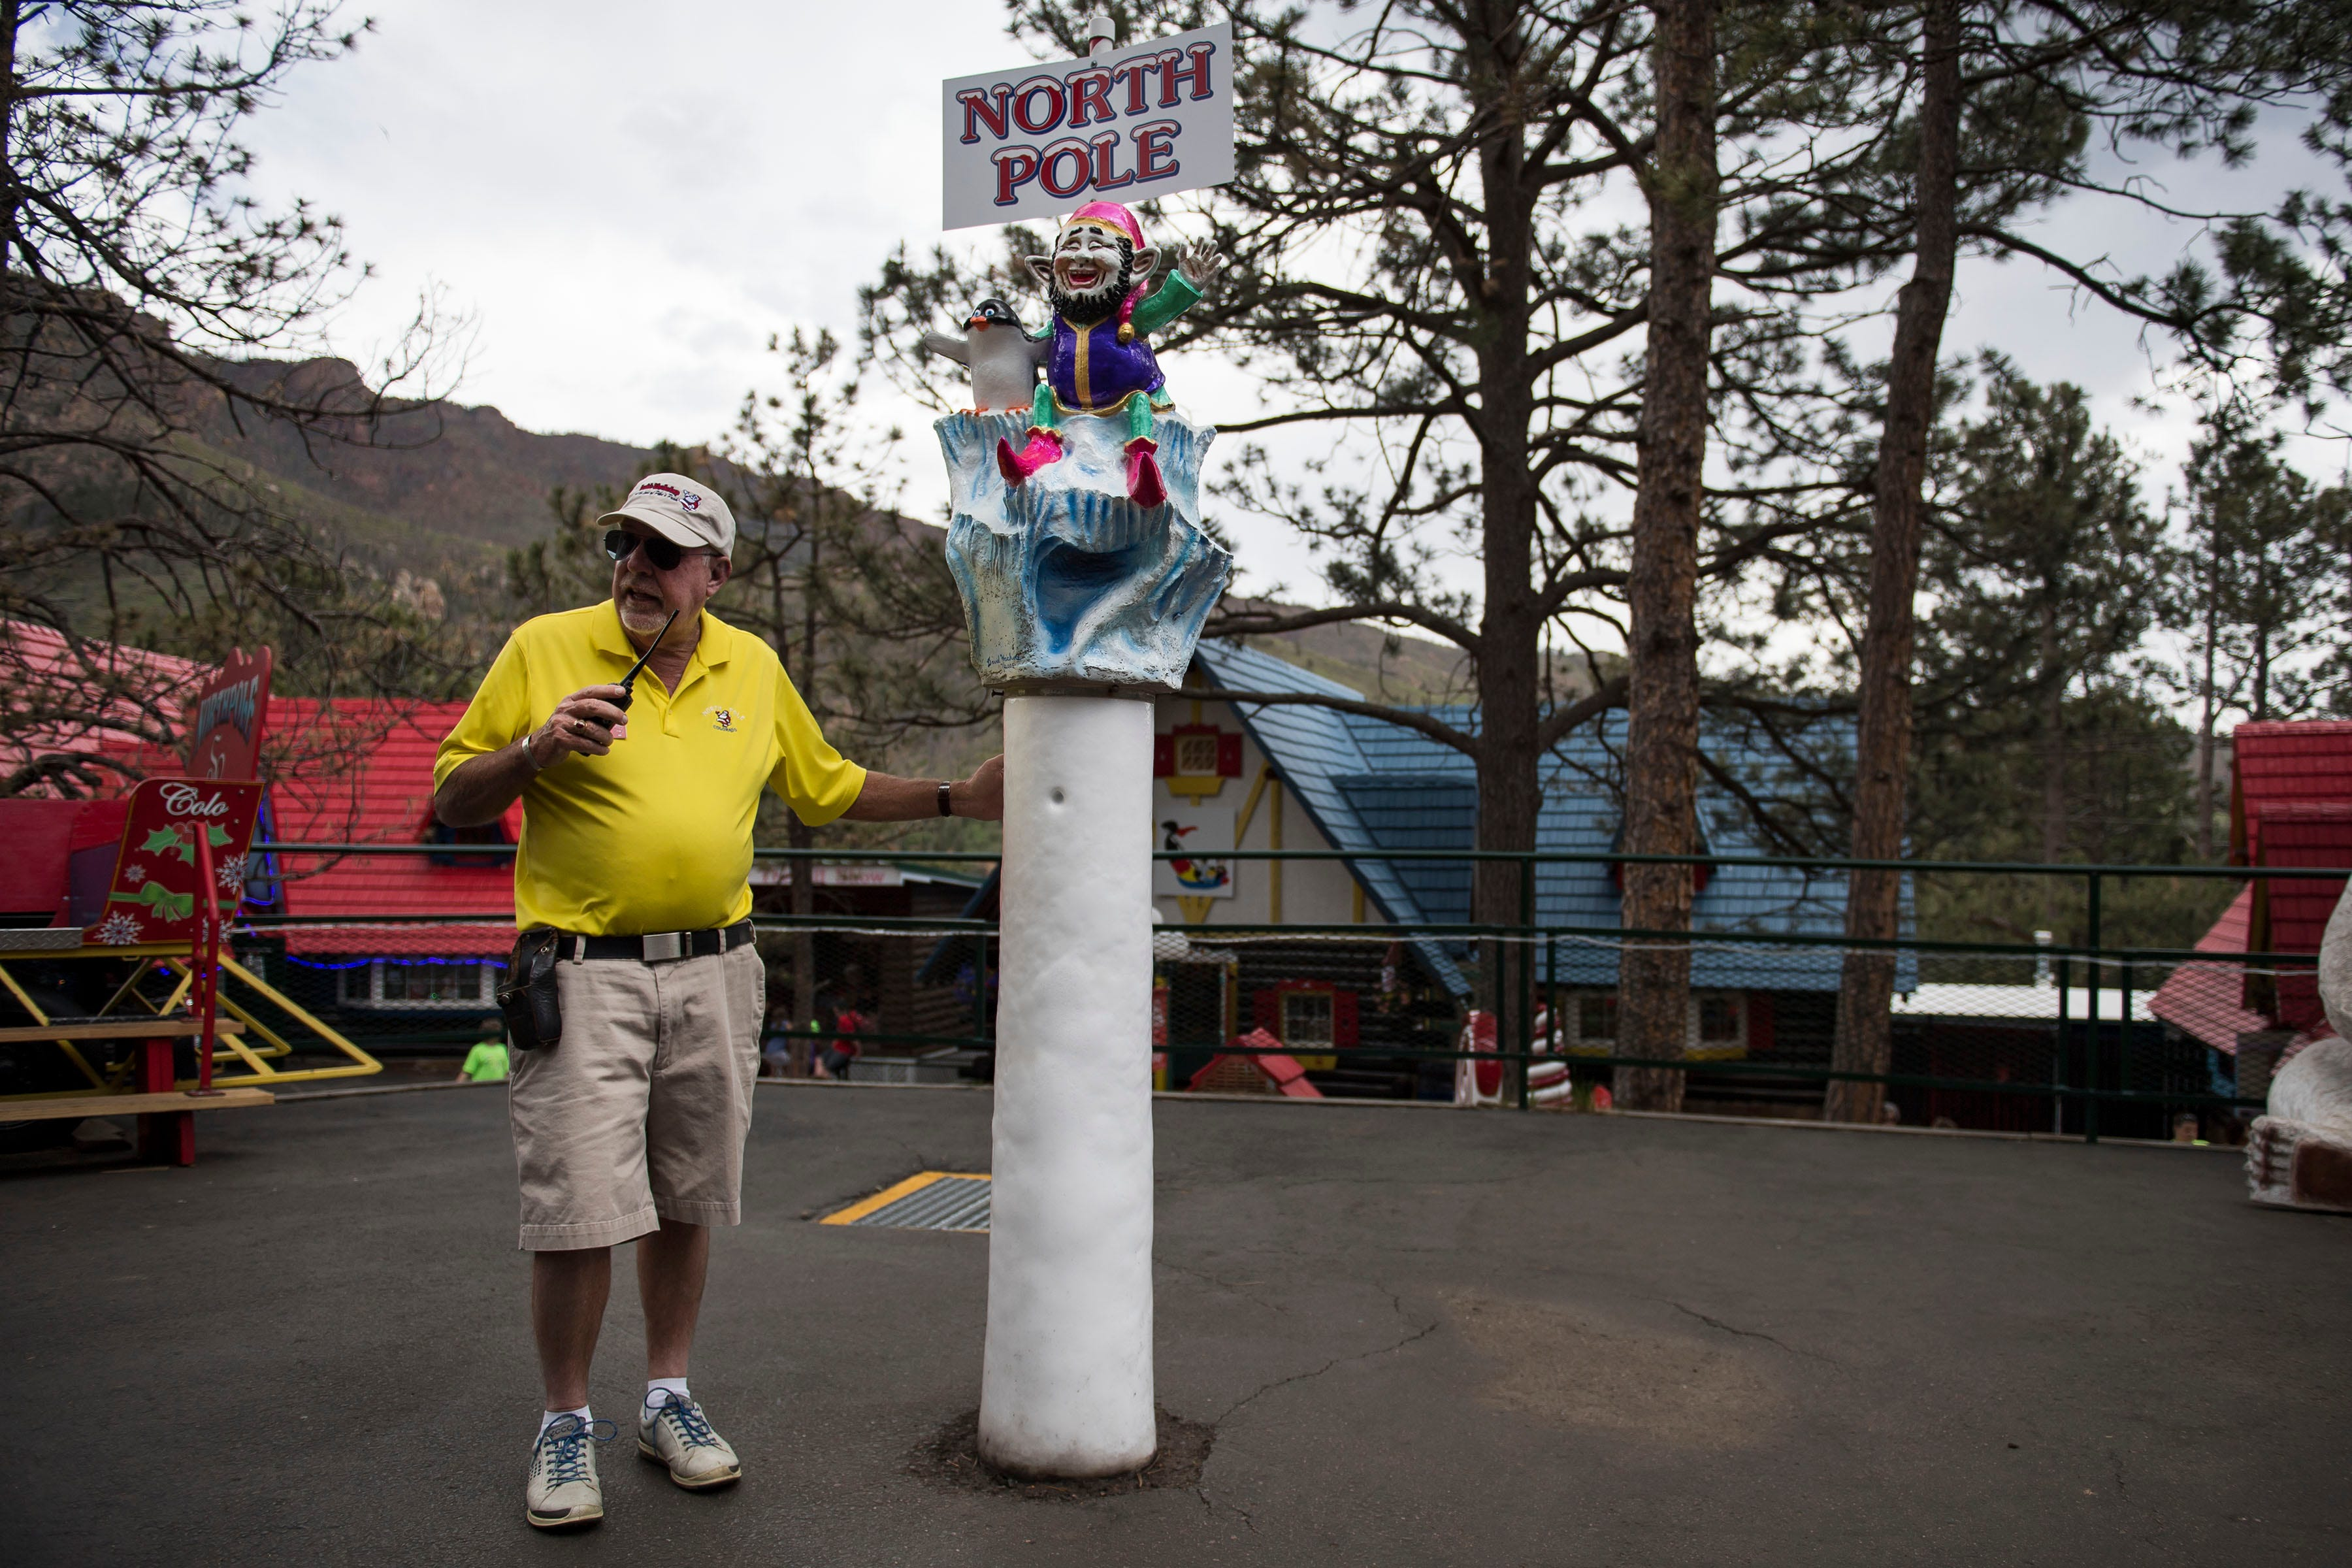 Santa's Workshop at The North Pole amusement park. Owner and president Tom Haggard watched a 2012 wildfire approach.